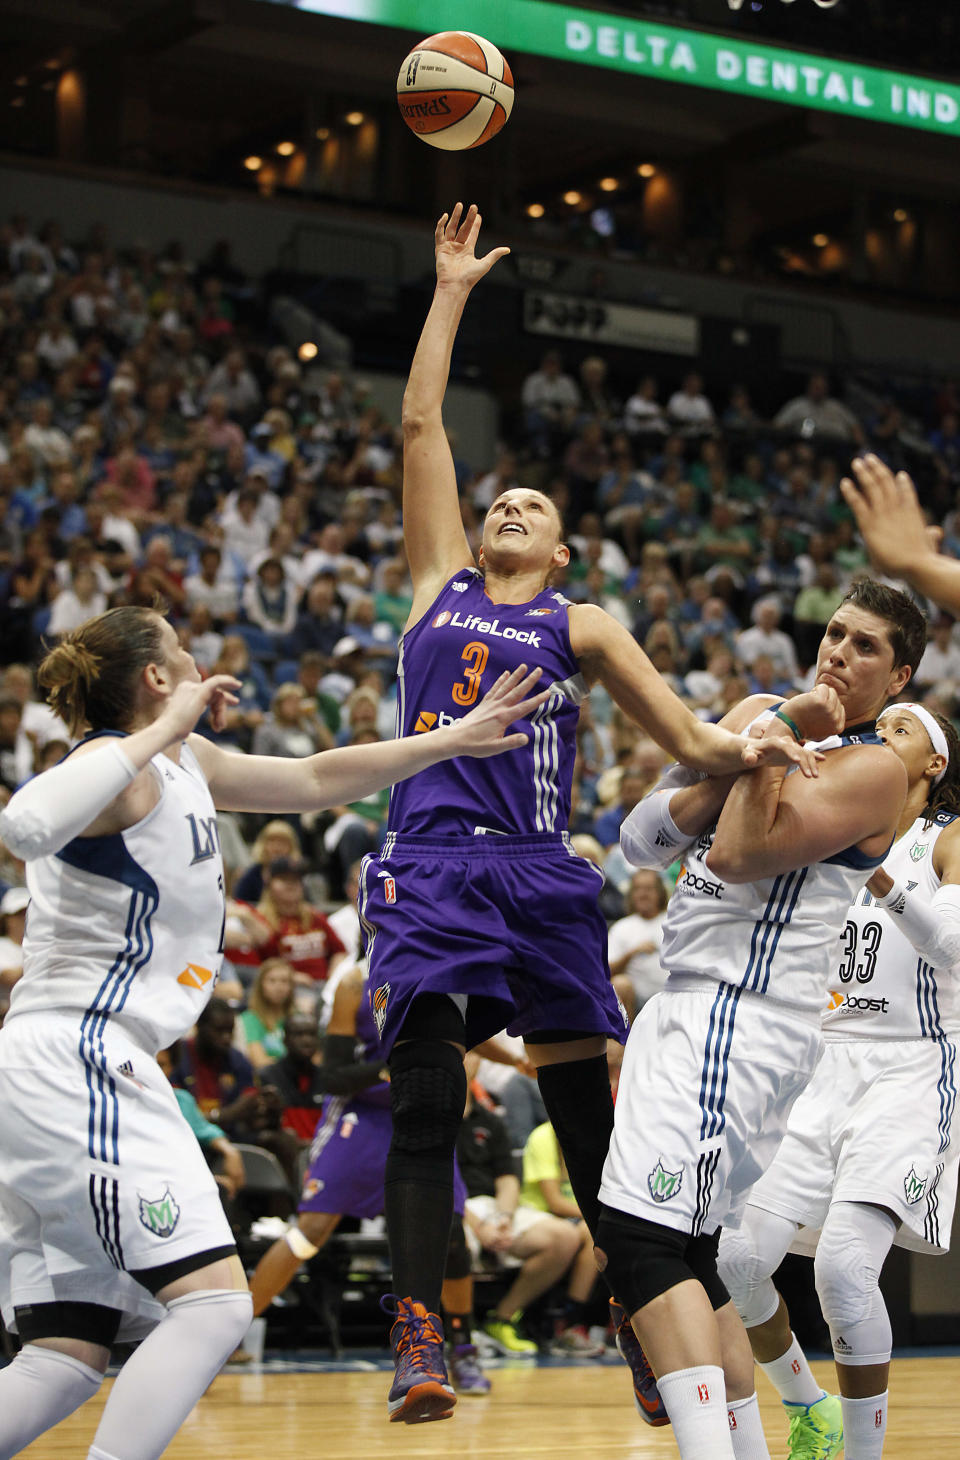 Taurasi's kiss garners huge Internet attention